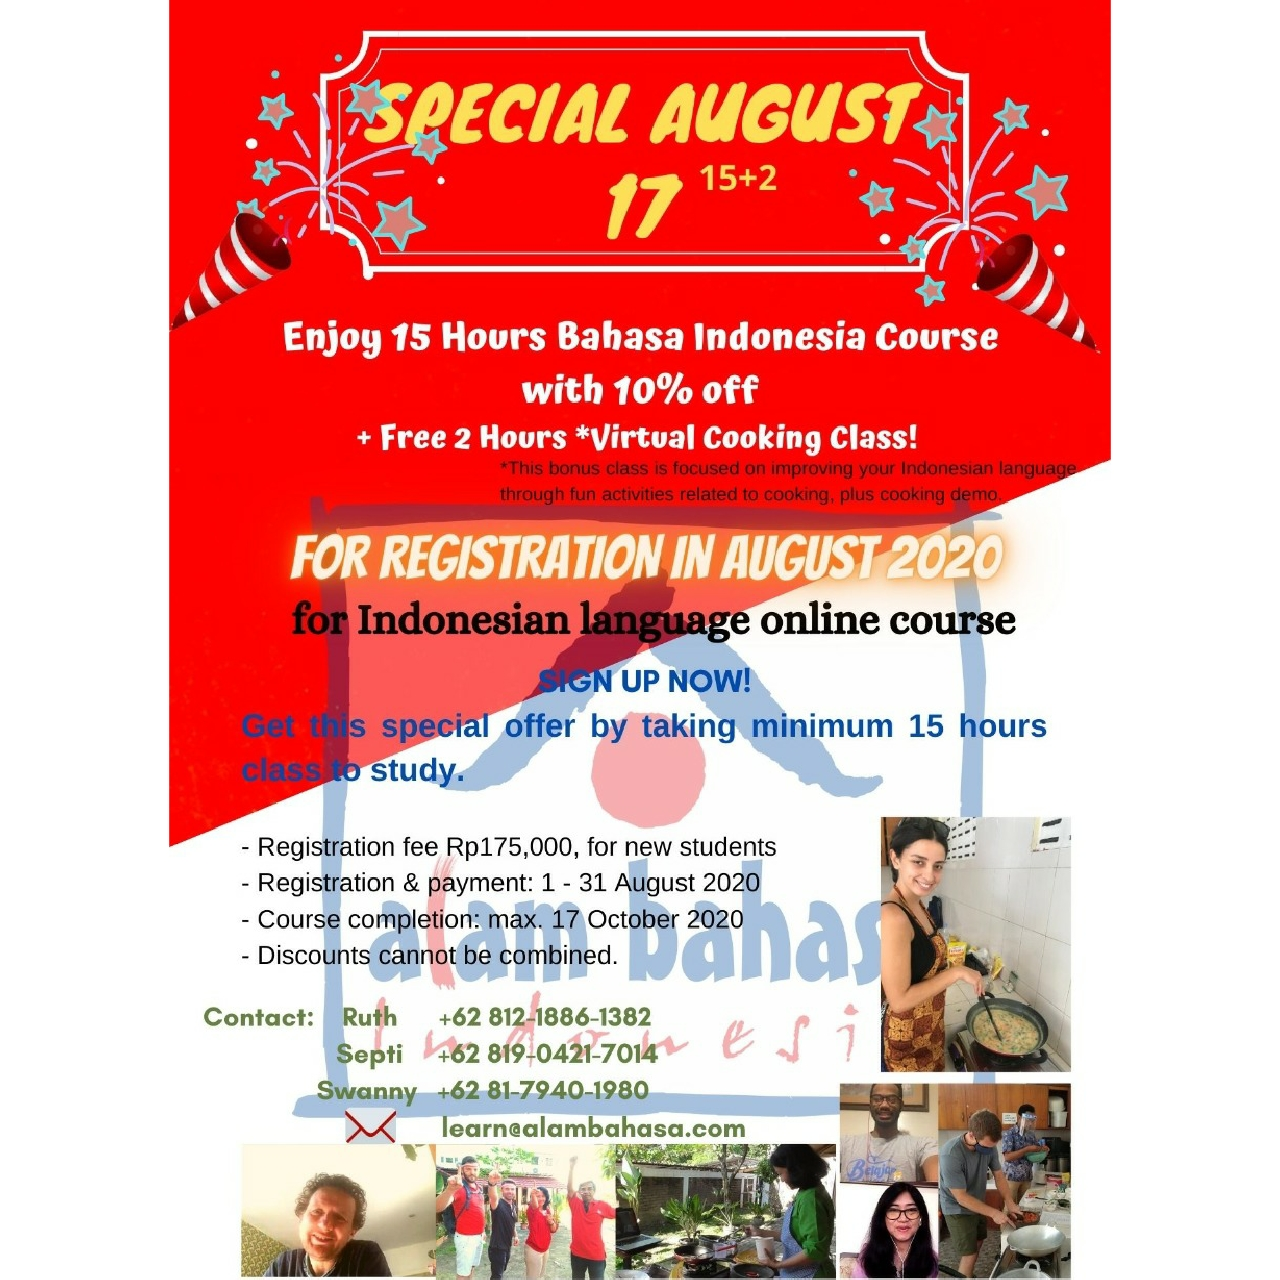 SPECIAL AUGUST 17